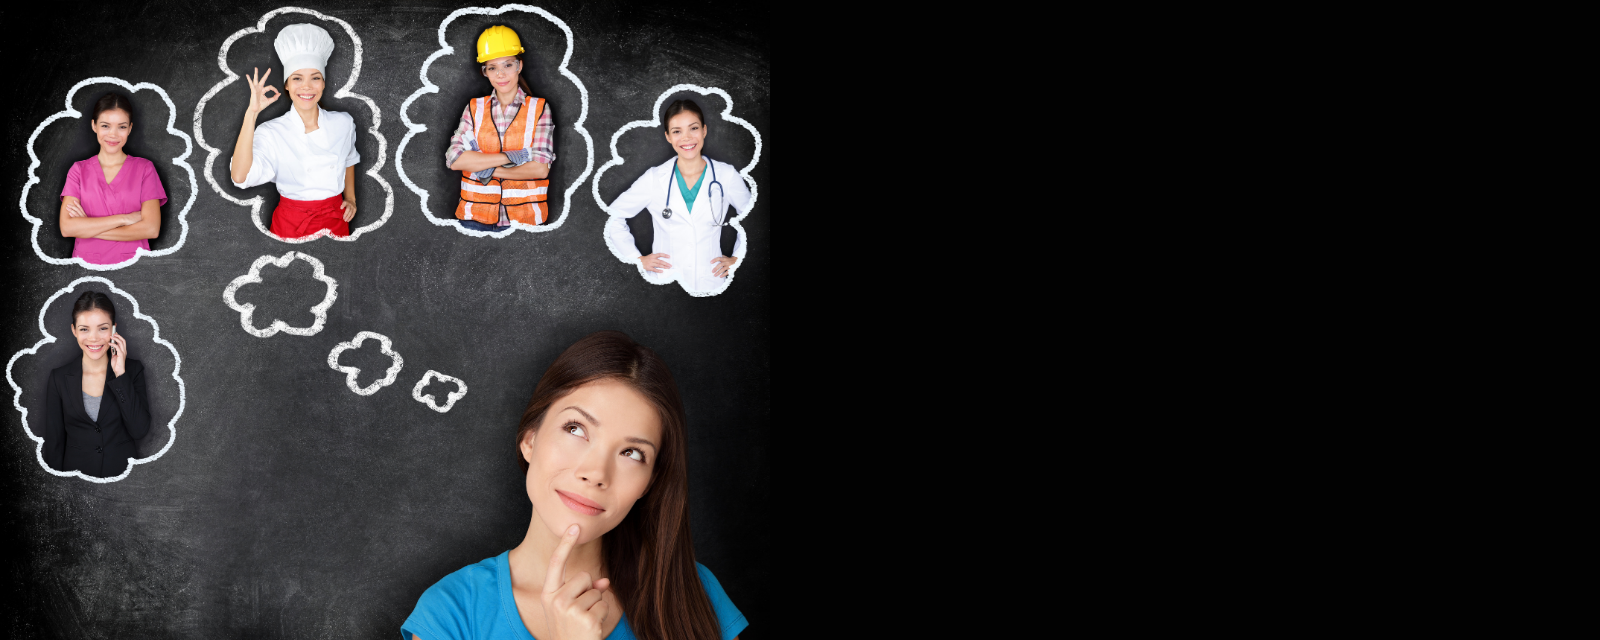 girl with bubbles above head containing her in different outfits representing different careers